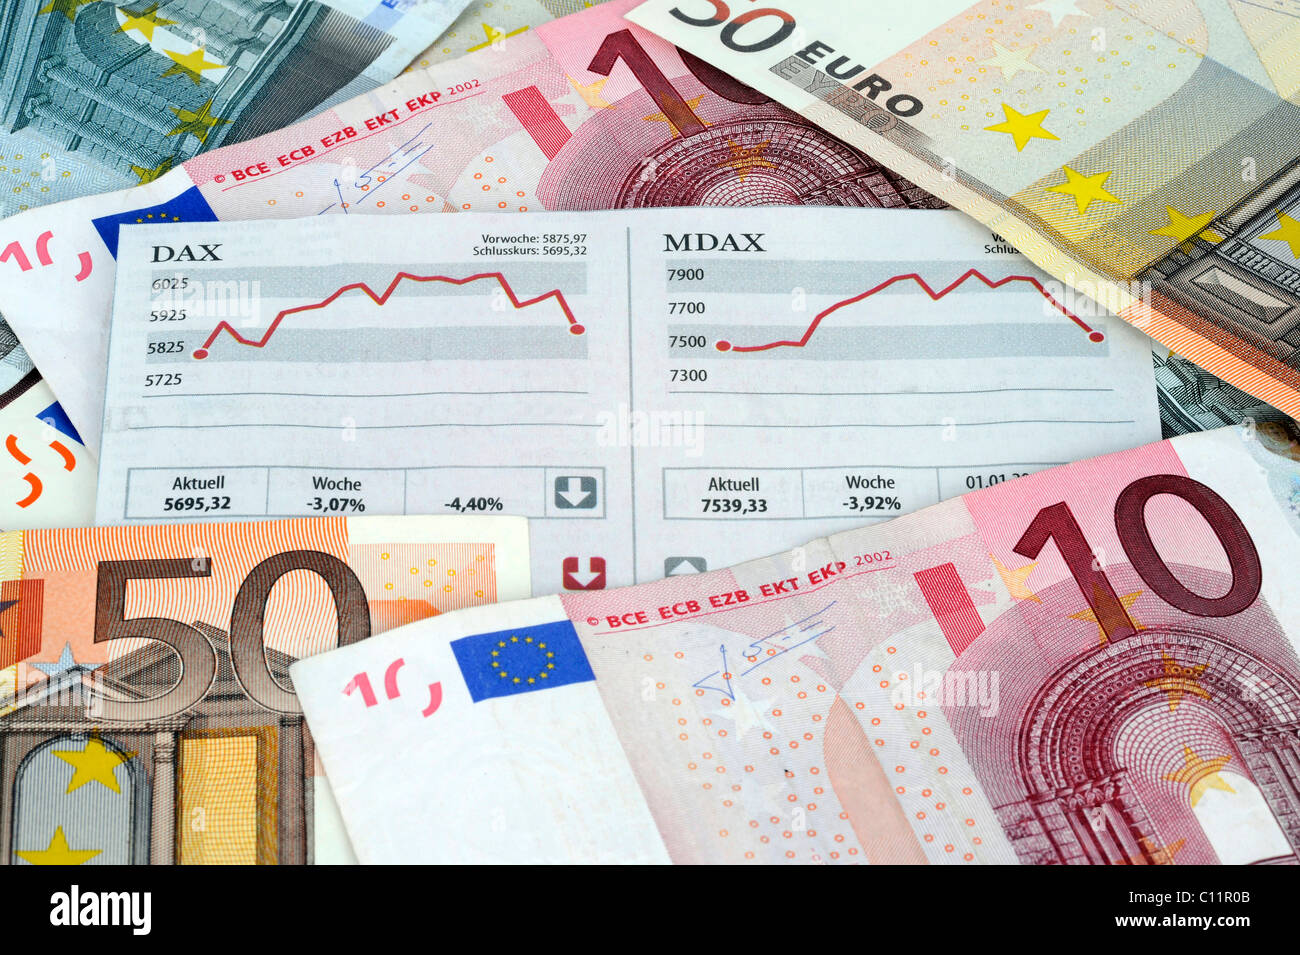 DAX, MDAX stock chart, euro bank notes, paper money, symbolic image for stock market gains, stock market losses - Stock Image